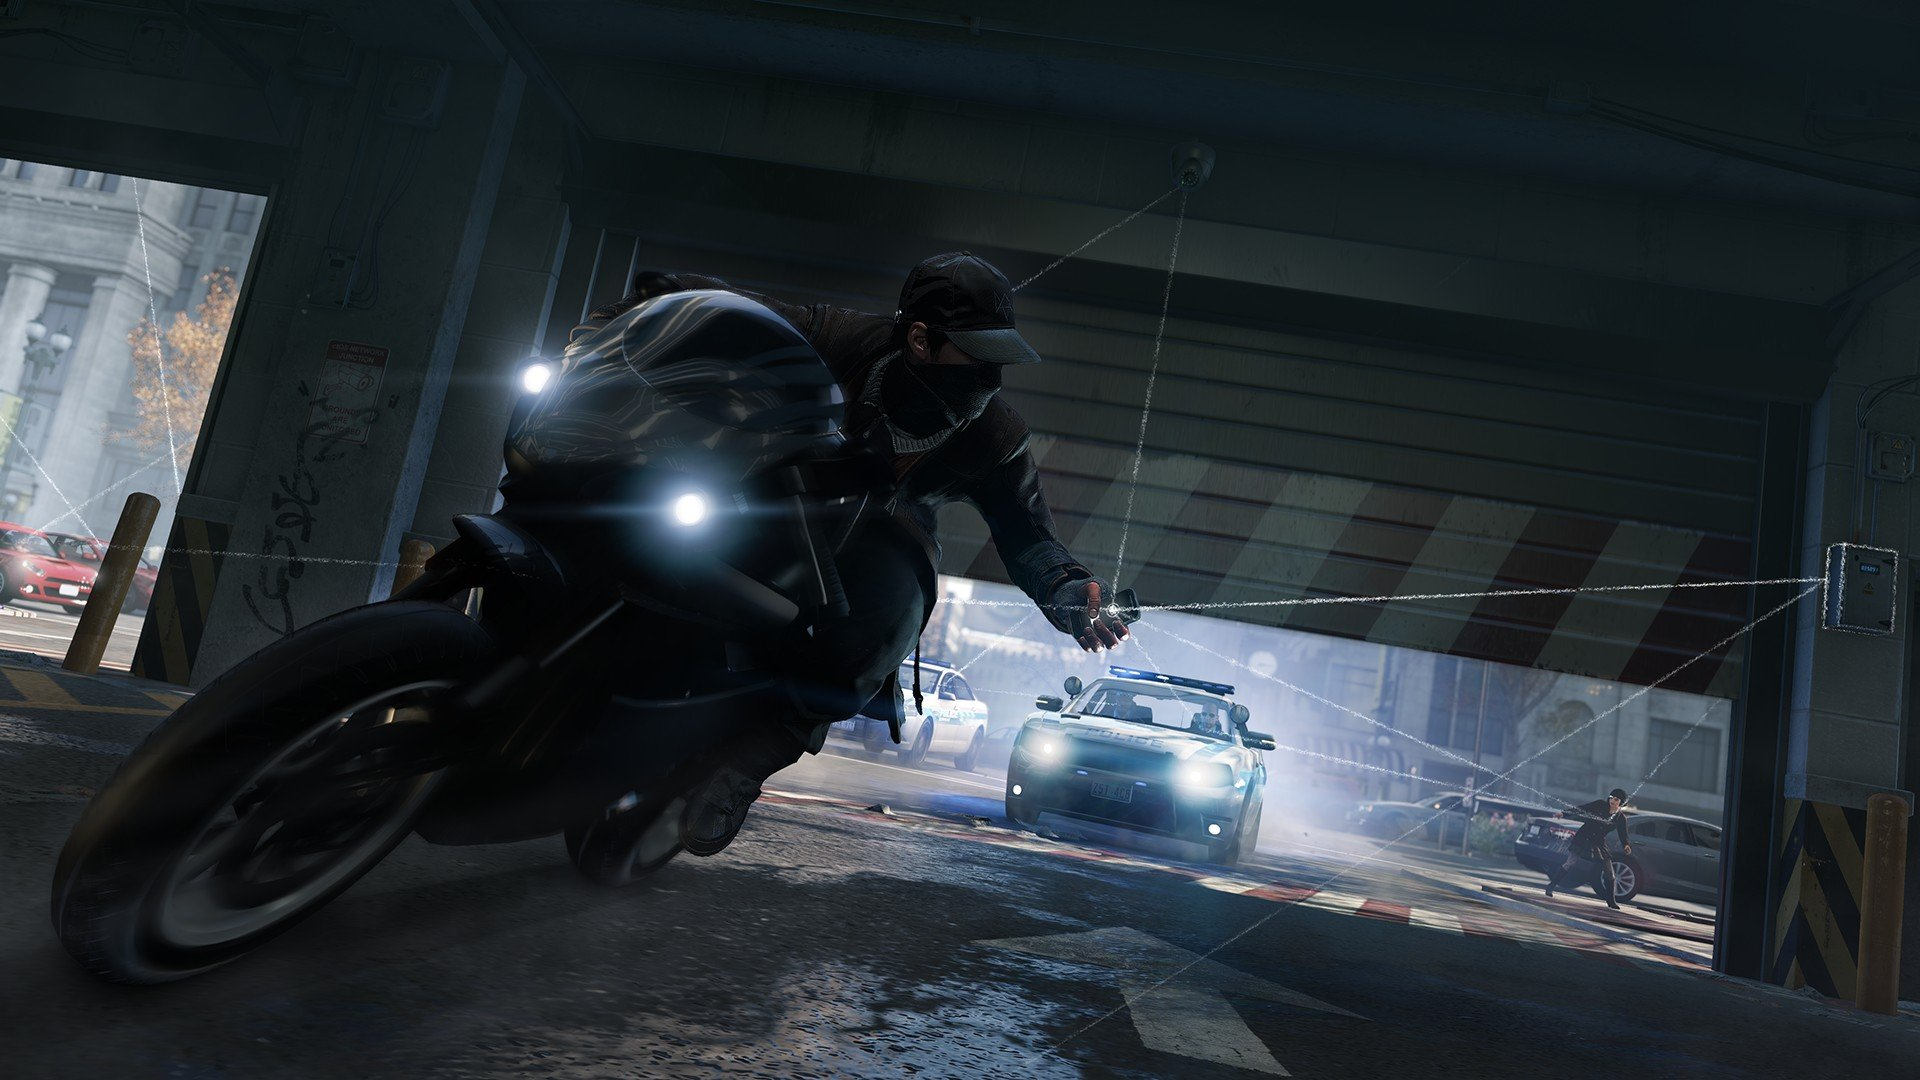 Watch Dogs на PC выглядит поразительно, по крайне мере если играть на высоких настройках графики. - Изображение 1